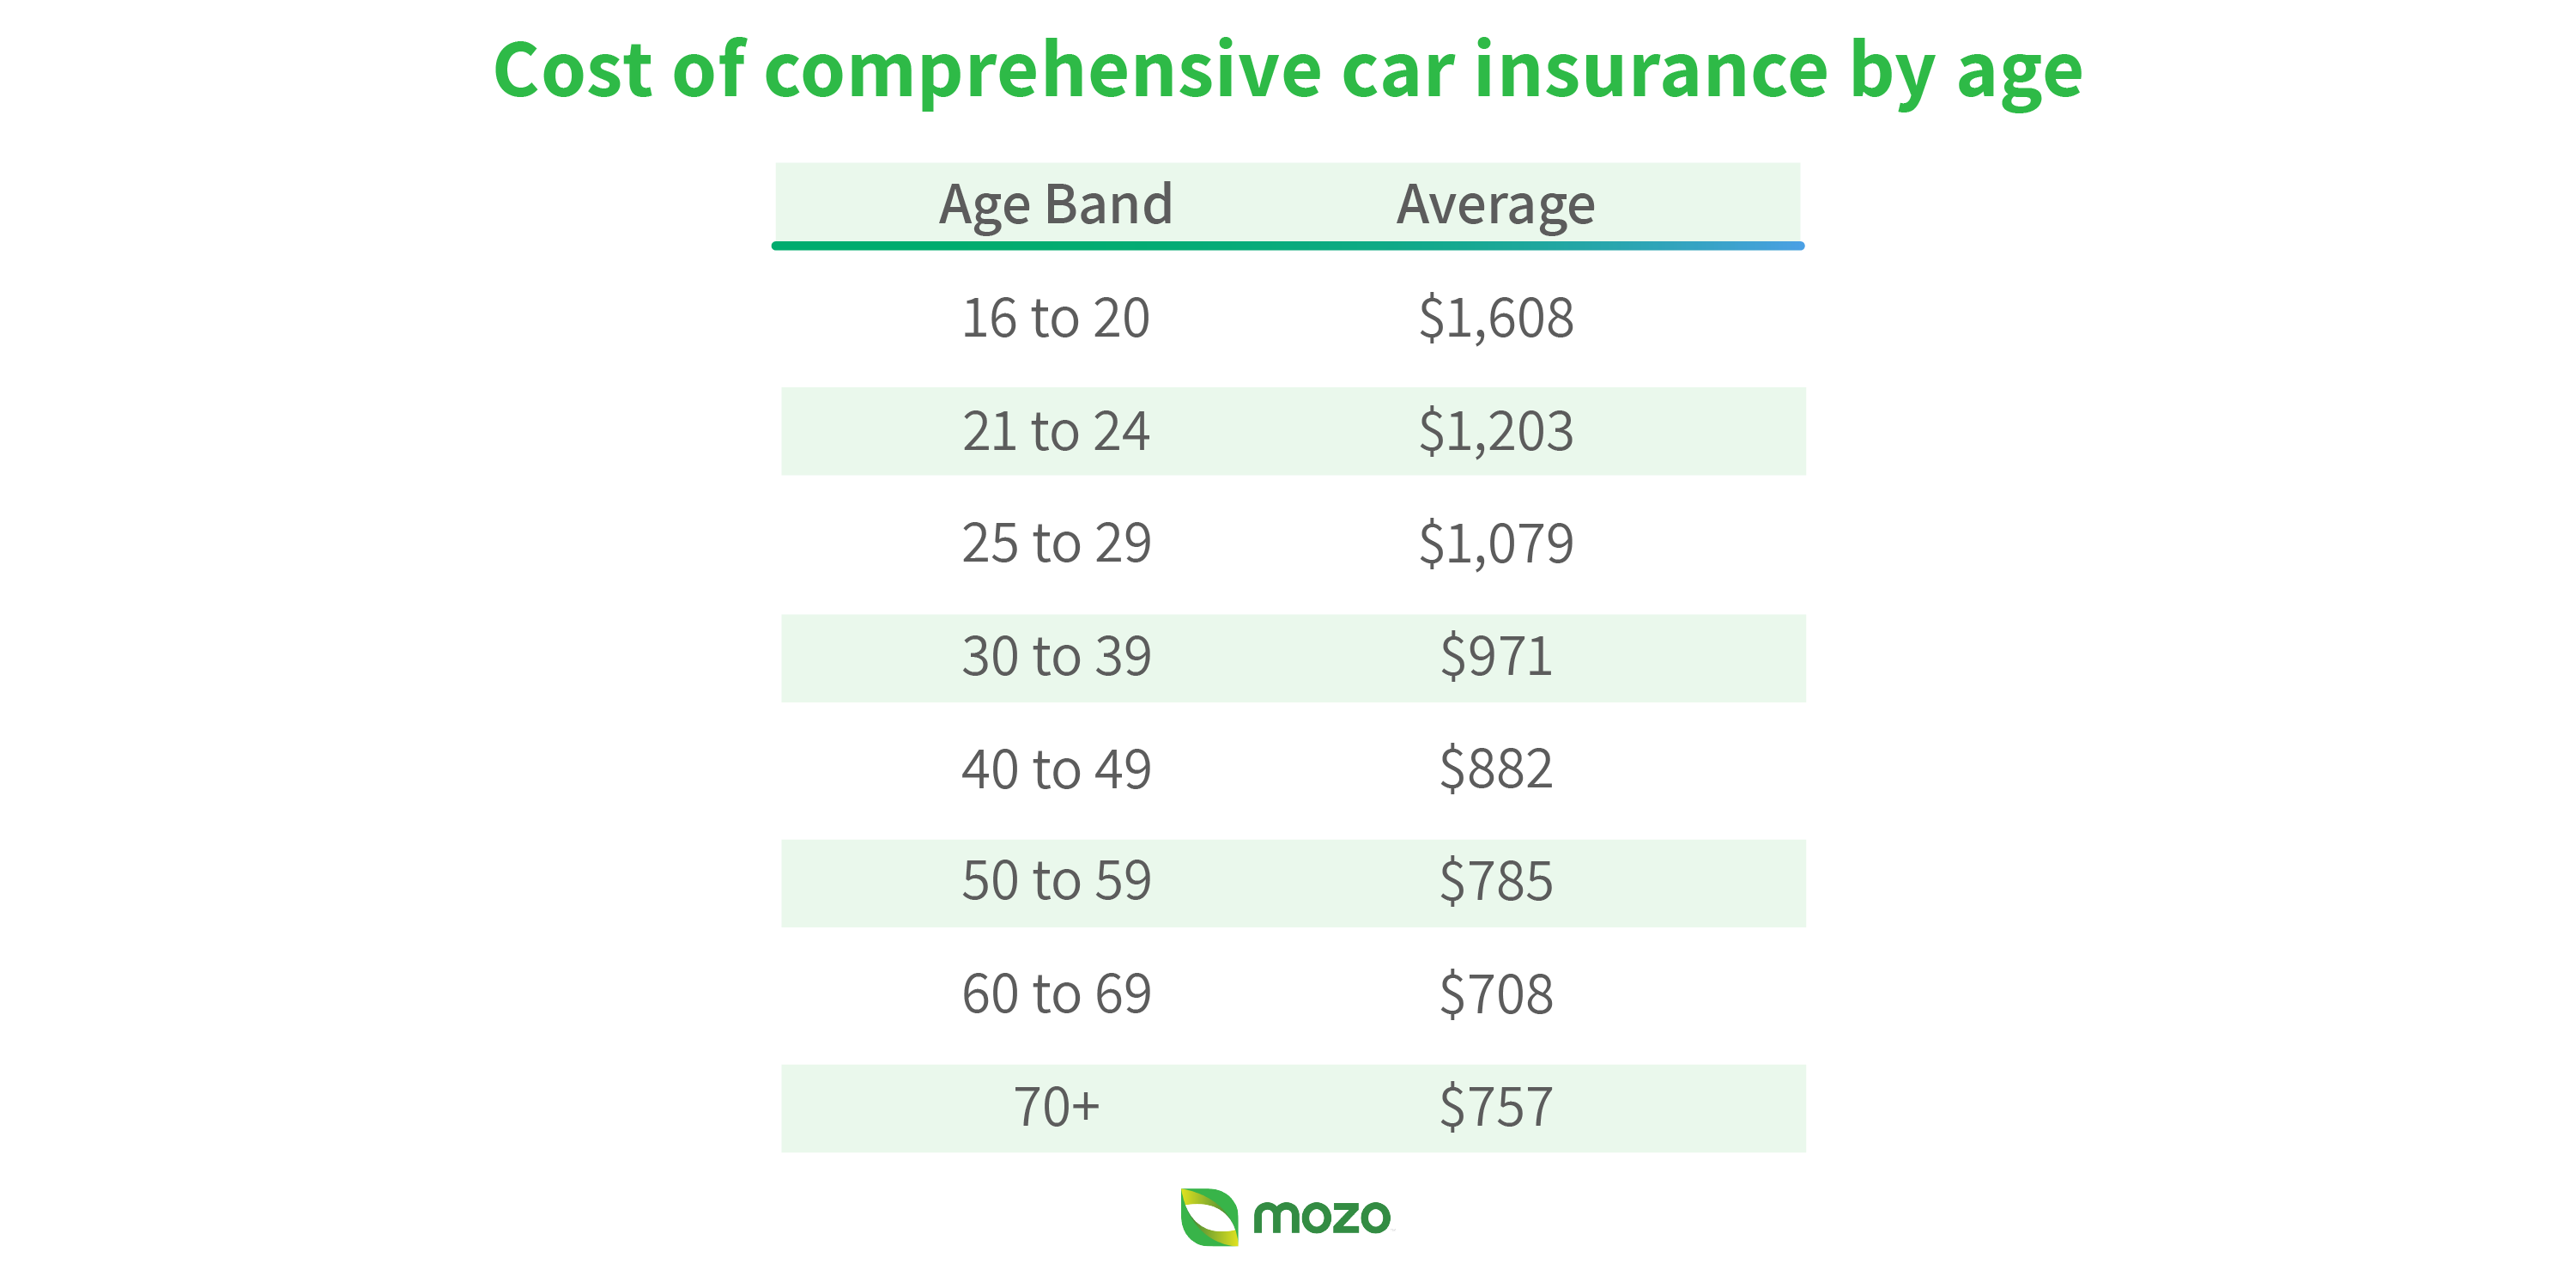 Graphic: Cost of comprehensive car insurance by age